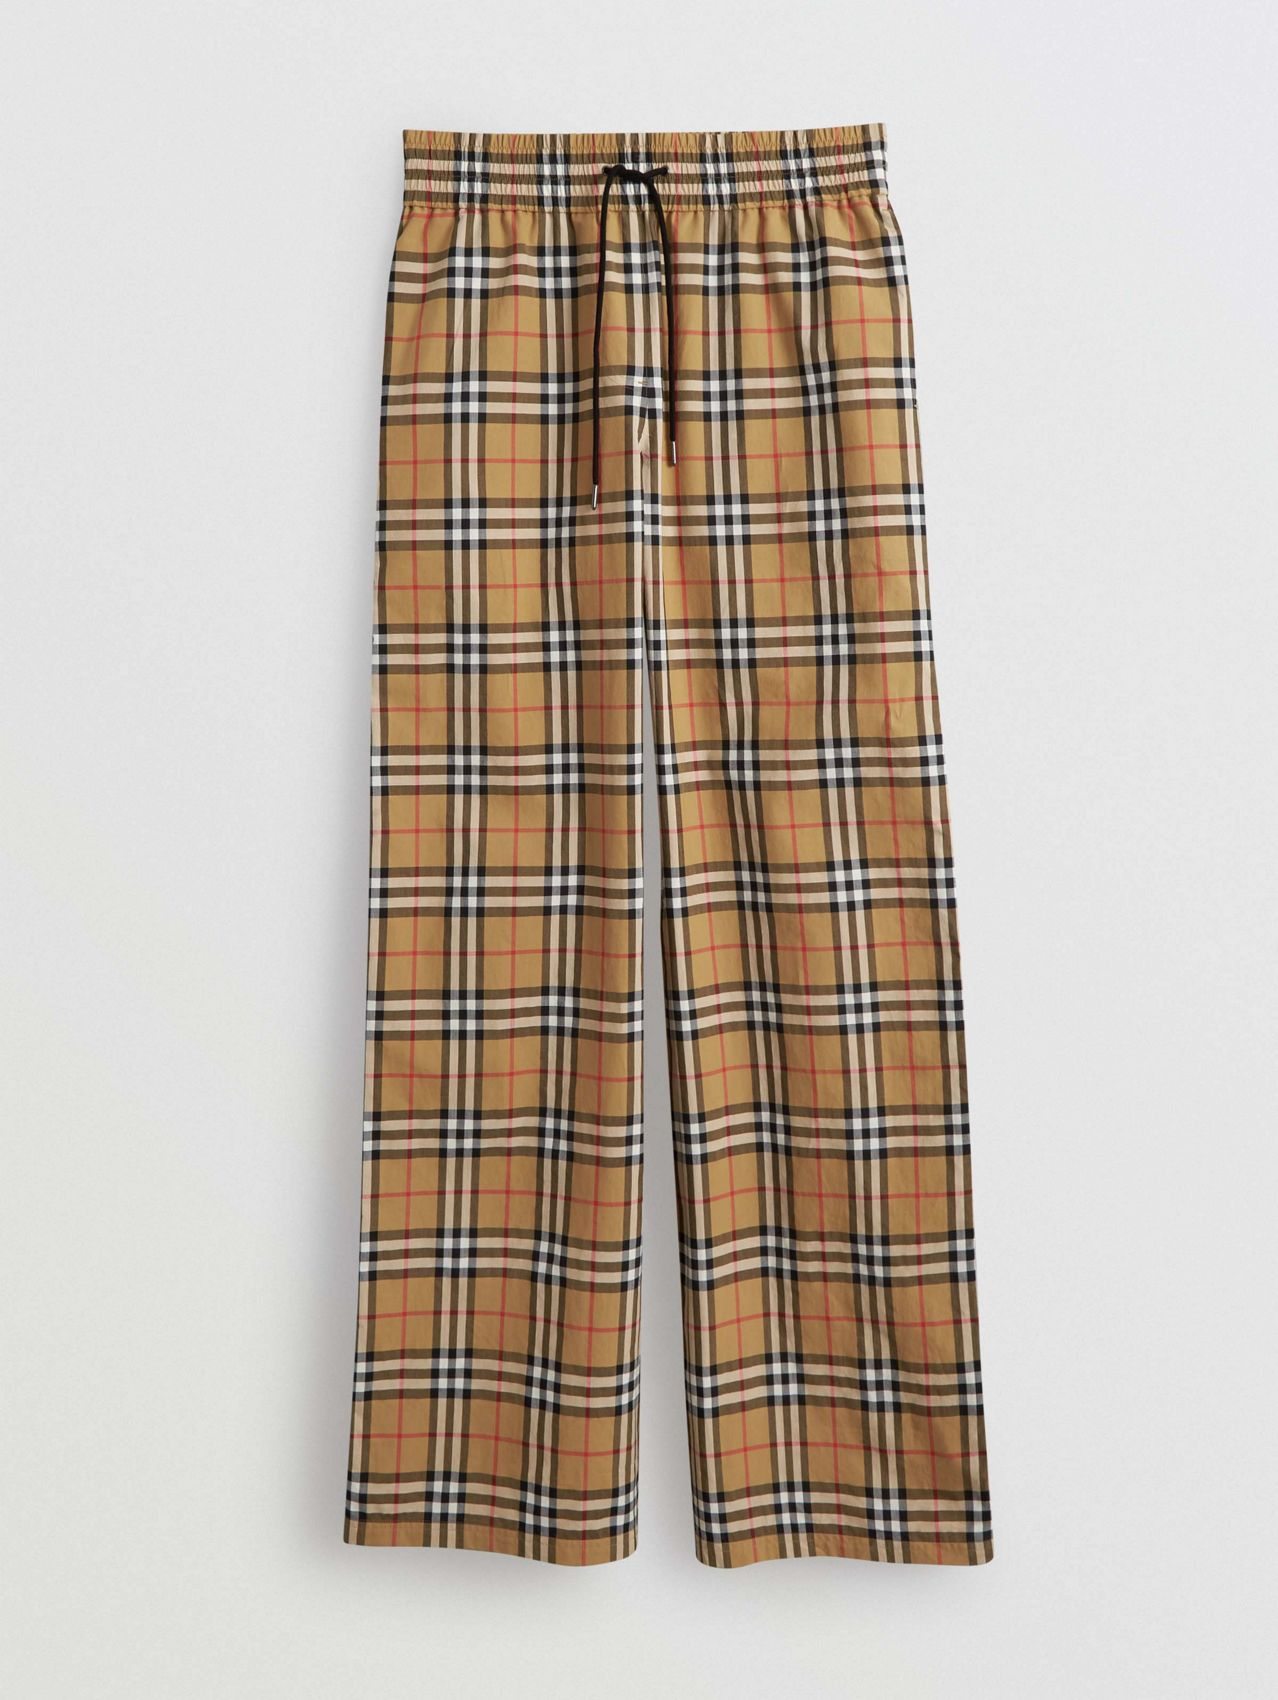 Pantalon en coton Vintage check avec satin (Jaune Antique)